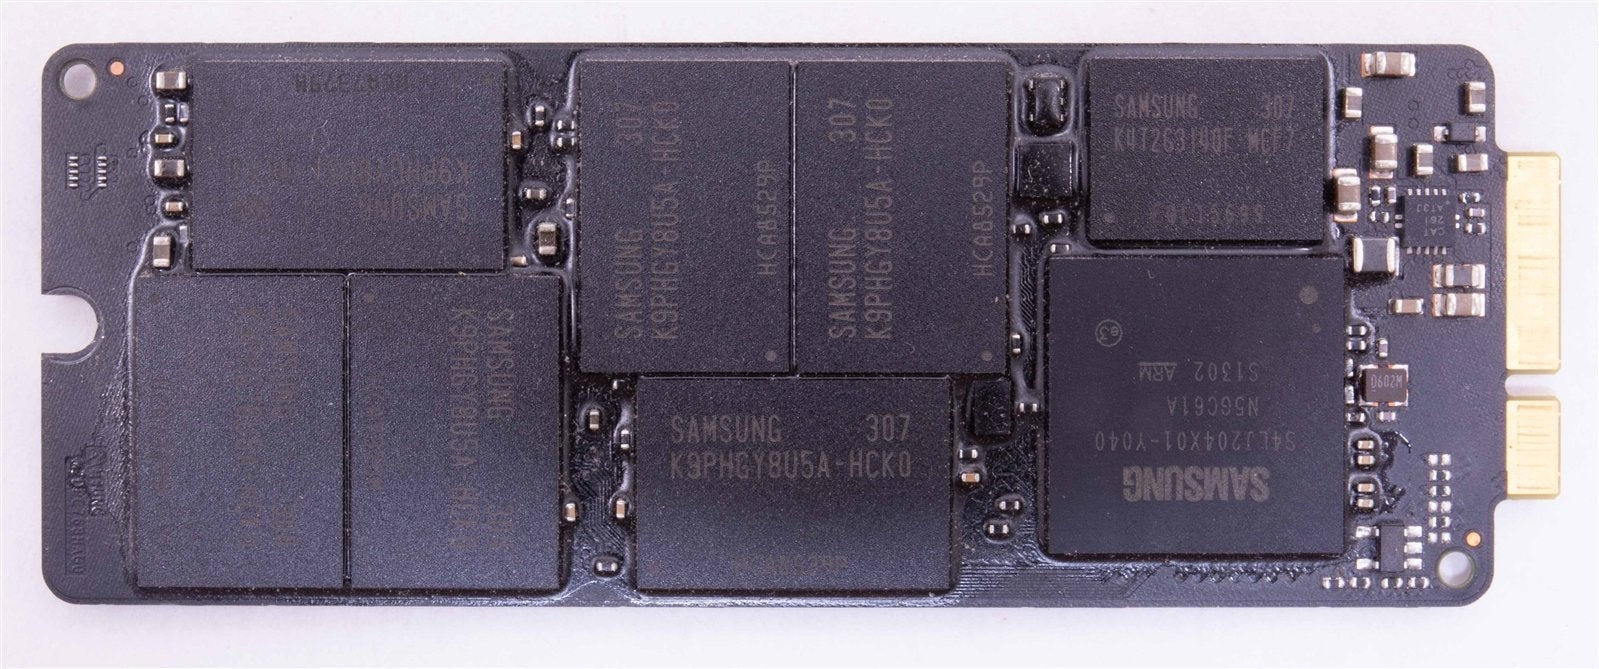 768 GB SSD Samsung MZ-DPC256T/OA2 FOR APPLE iMac 2012-2013 655-1796